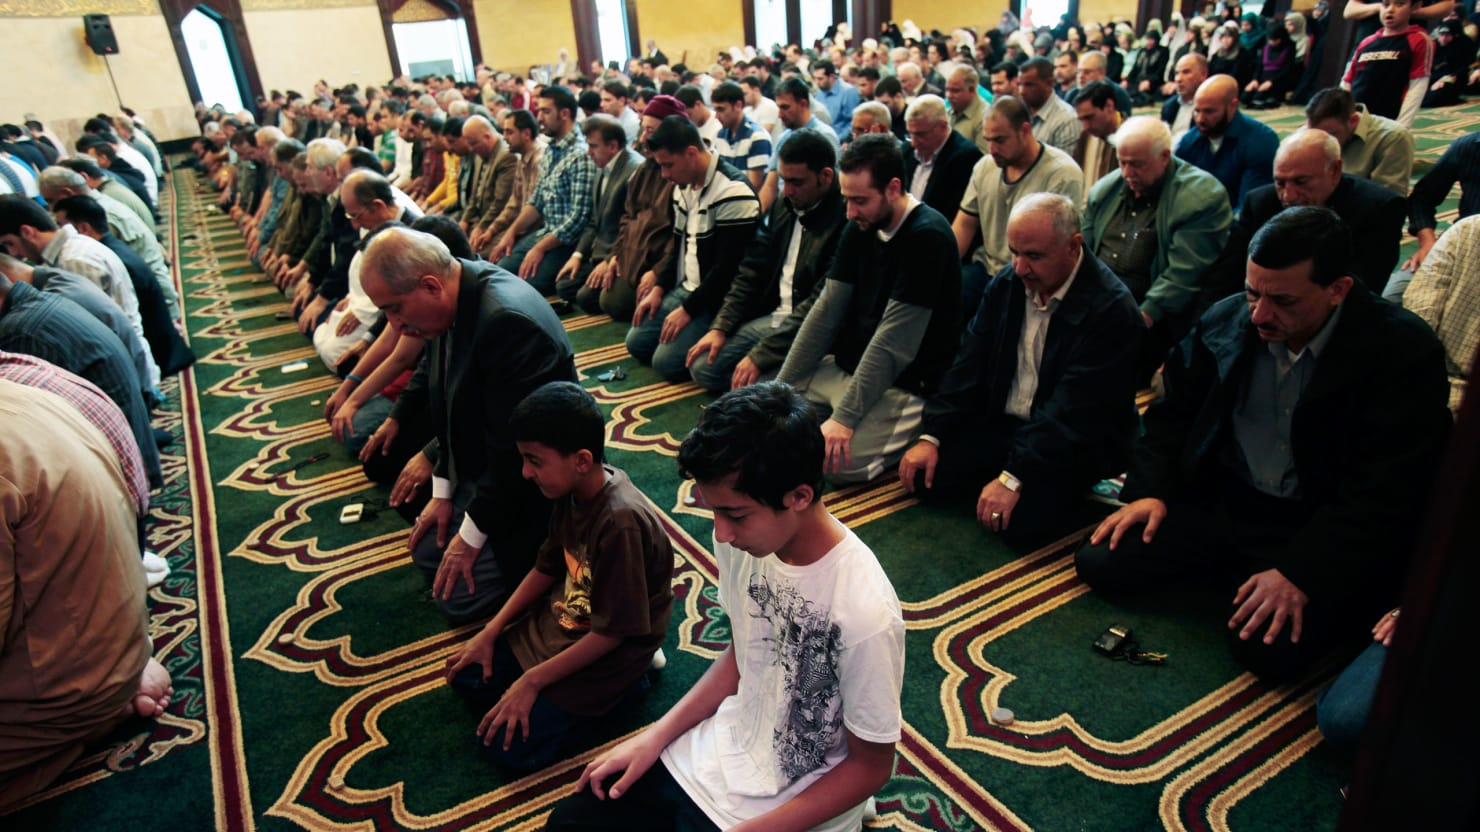 sedate_Dearborn, MI: Where Muslims Are…Americans